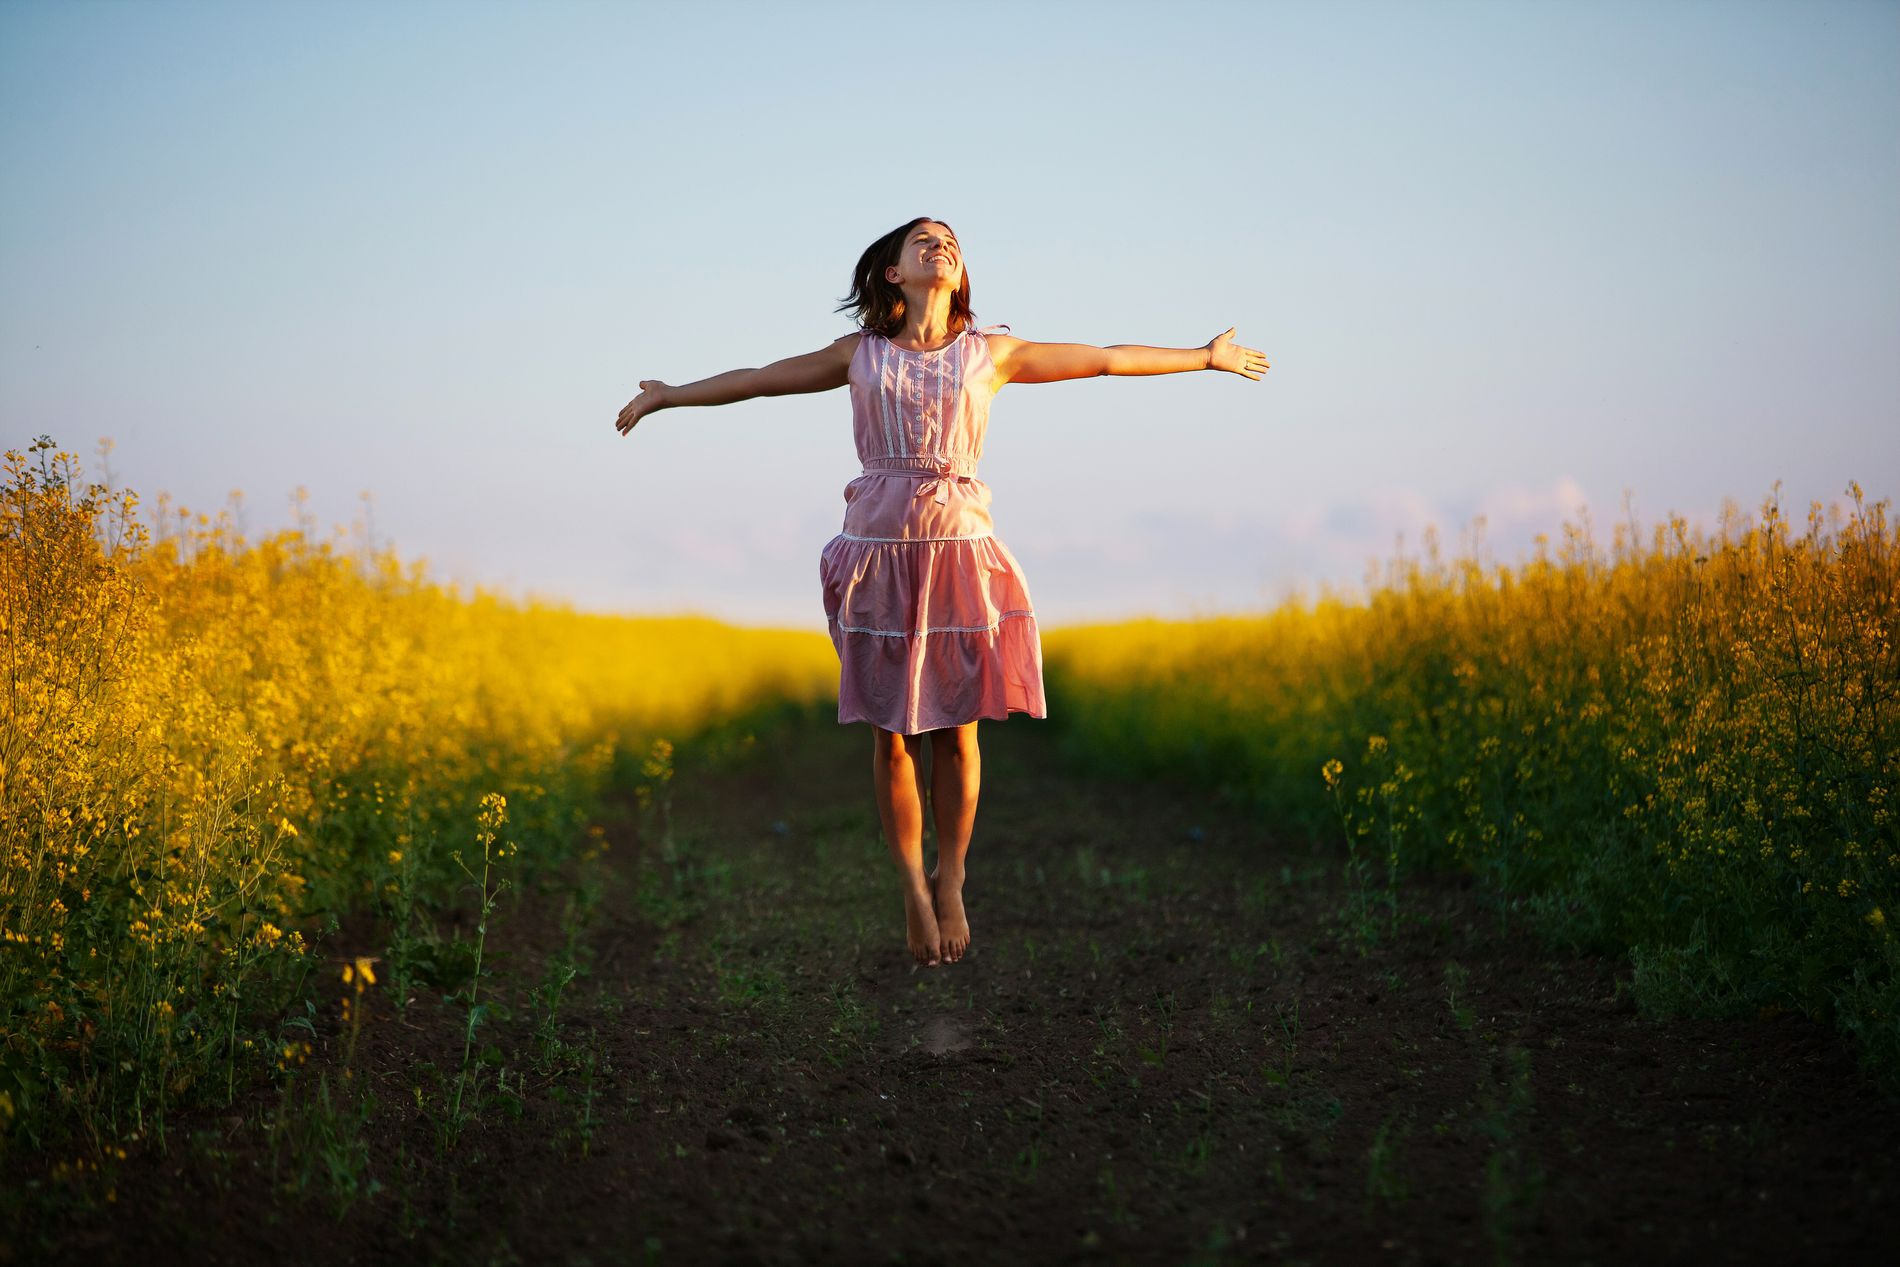 how to know that happiness comes from within